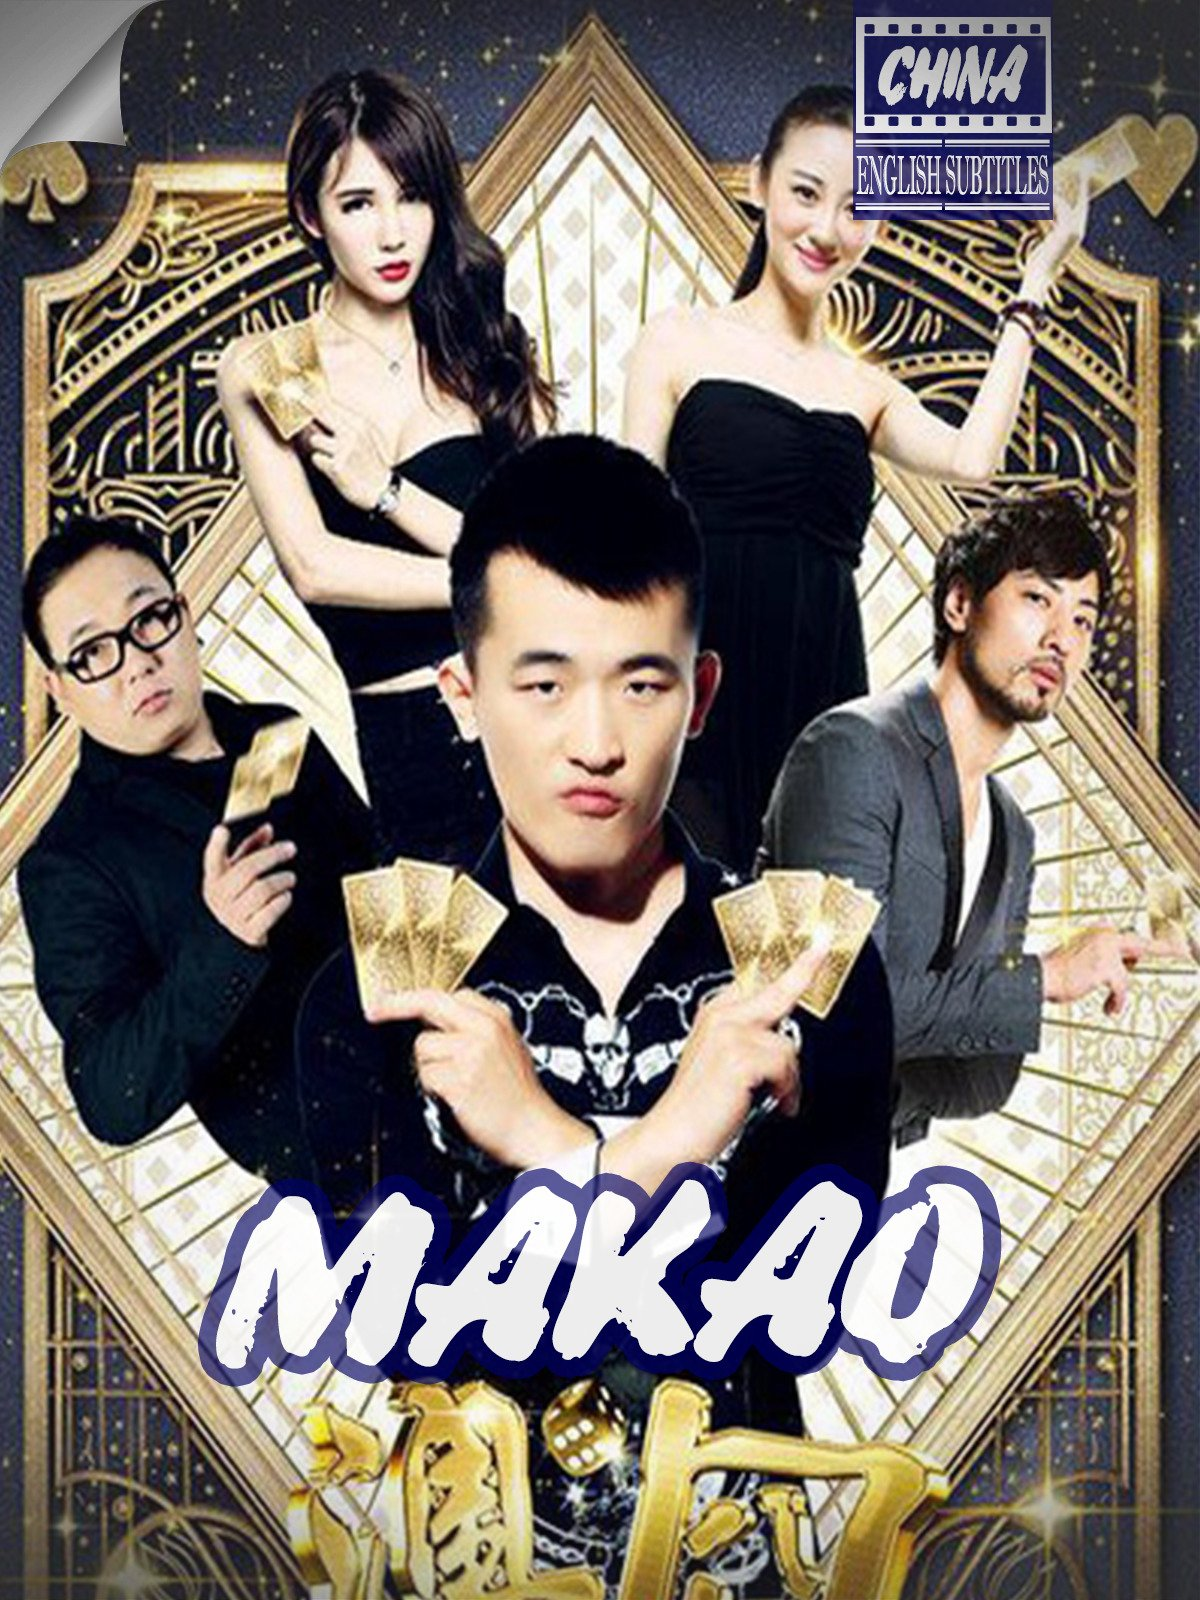 Macao (english subtitles) China